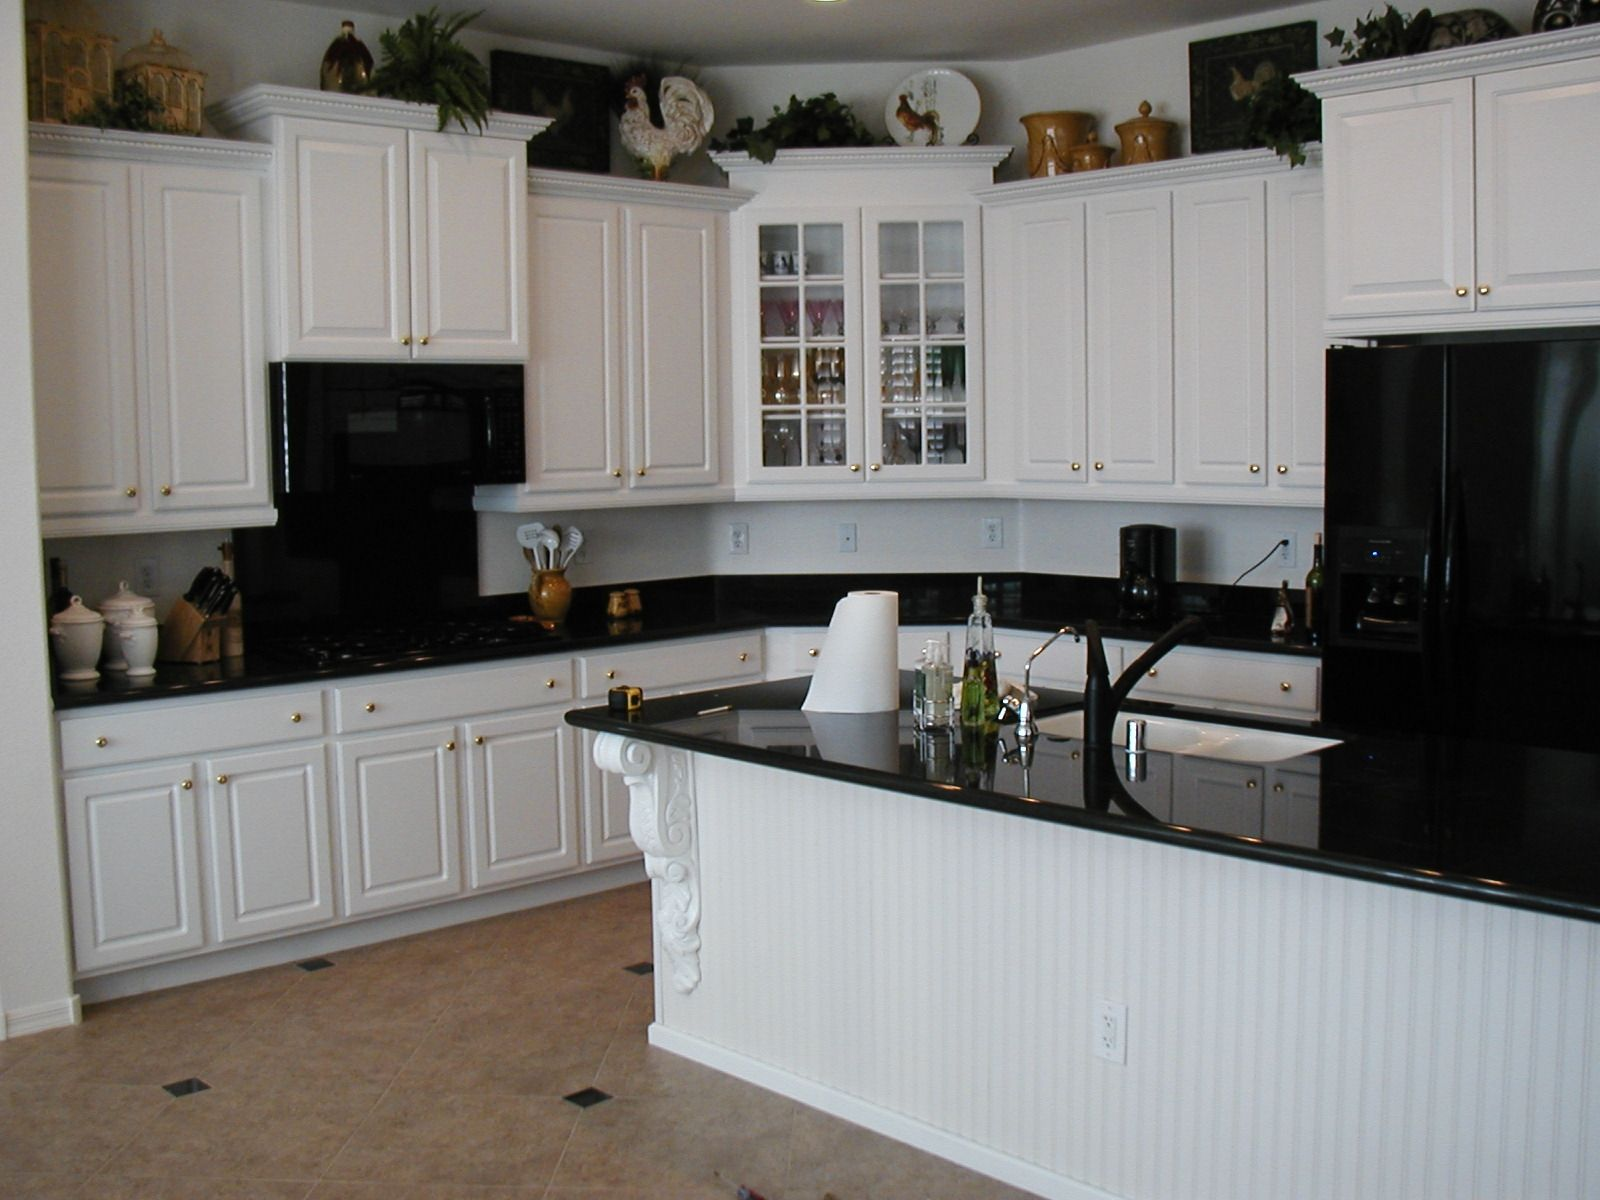 Creamy White Kitchen Cabinets With Black Appliances Are White - Green kitchen cabinets with black countertops